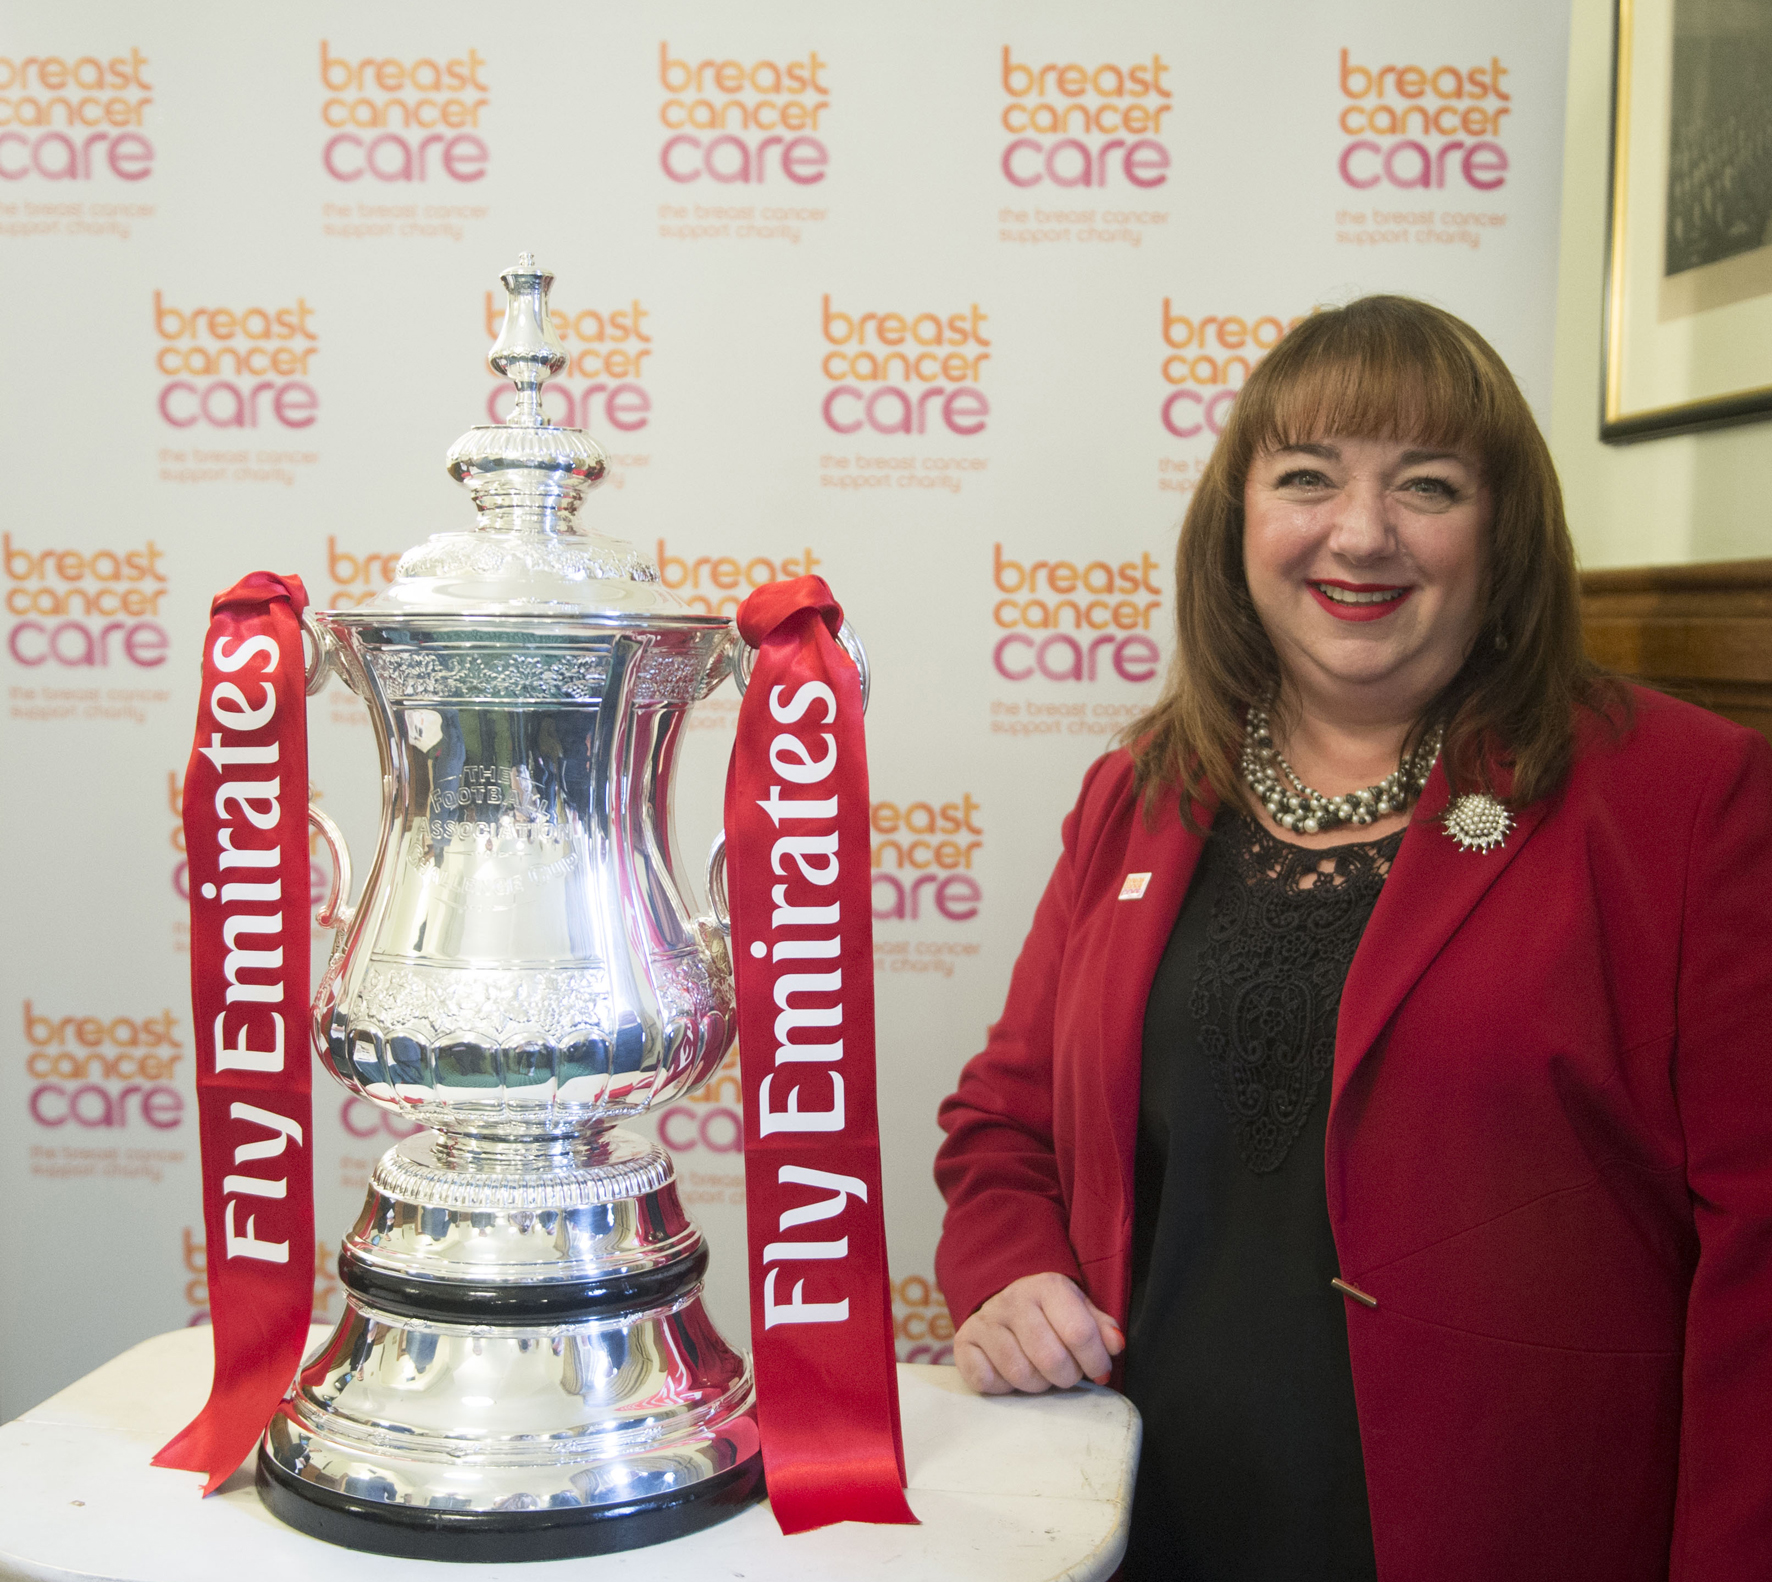 2015_09_11_Breast_Cancer_Care_FA_cup_reduced_and_cropped.JPG